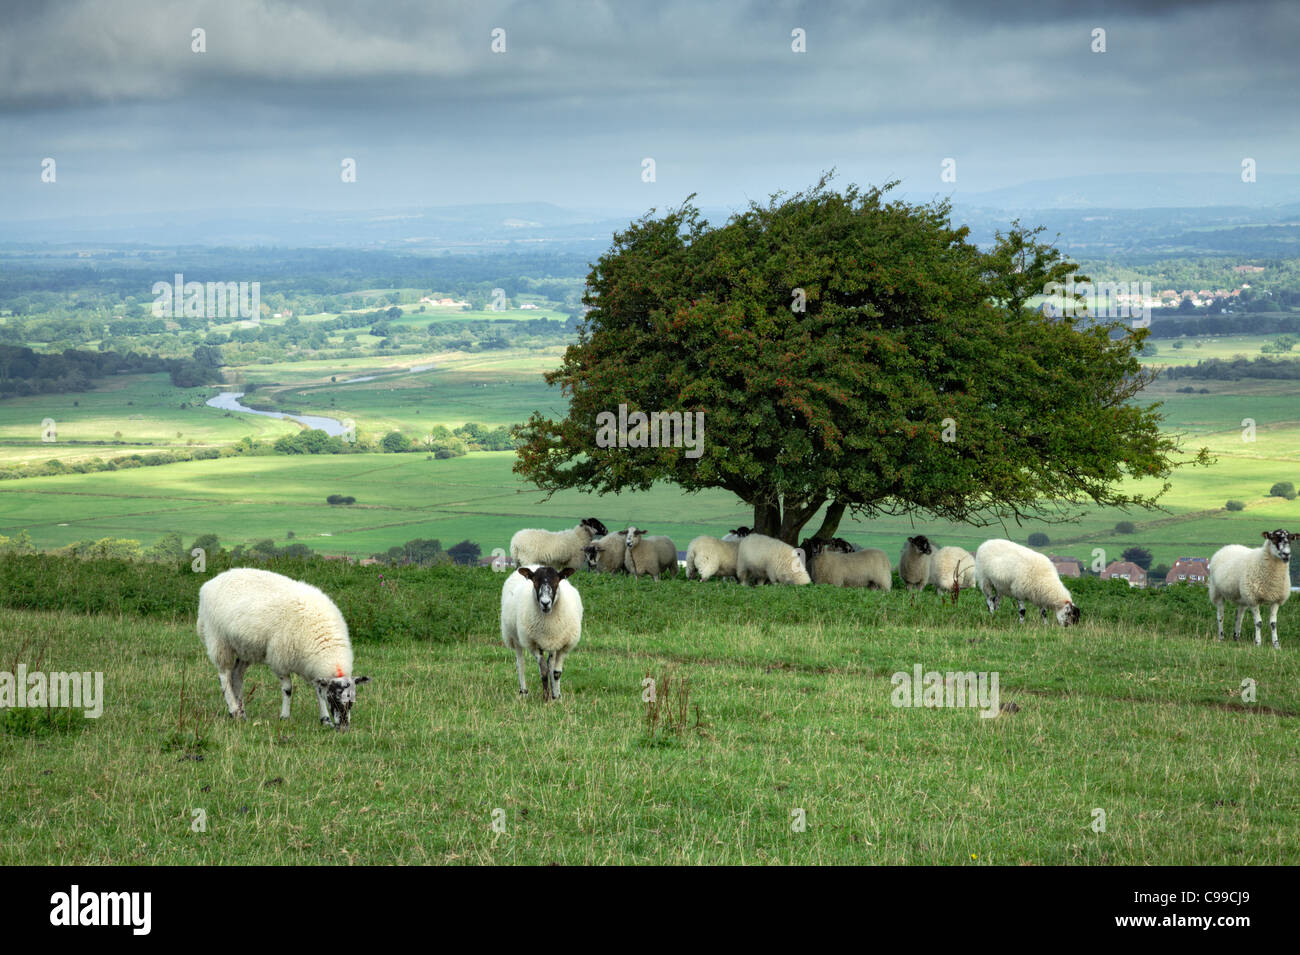 Sheep sheltering under tree, Amberley Mount, West Sussex - Stock Image